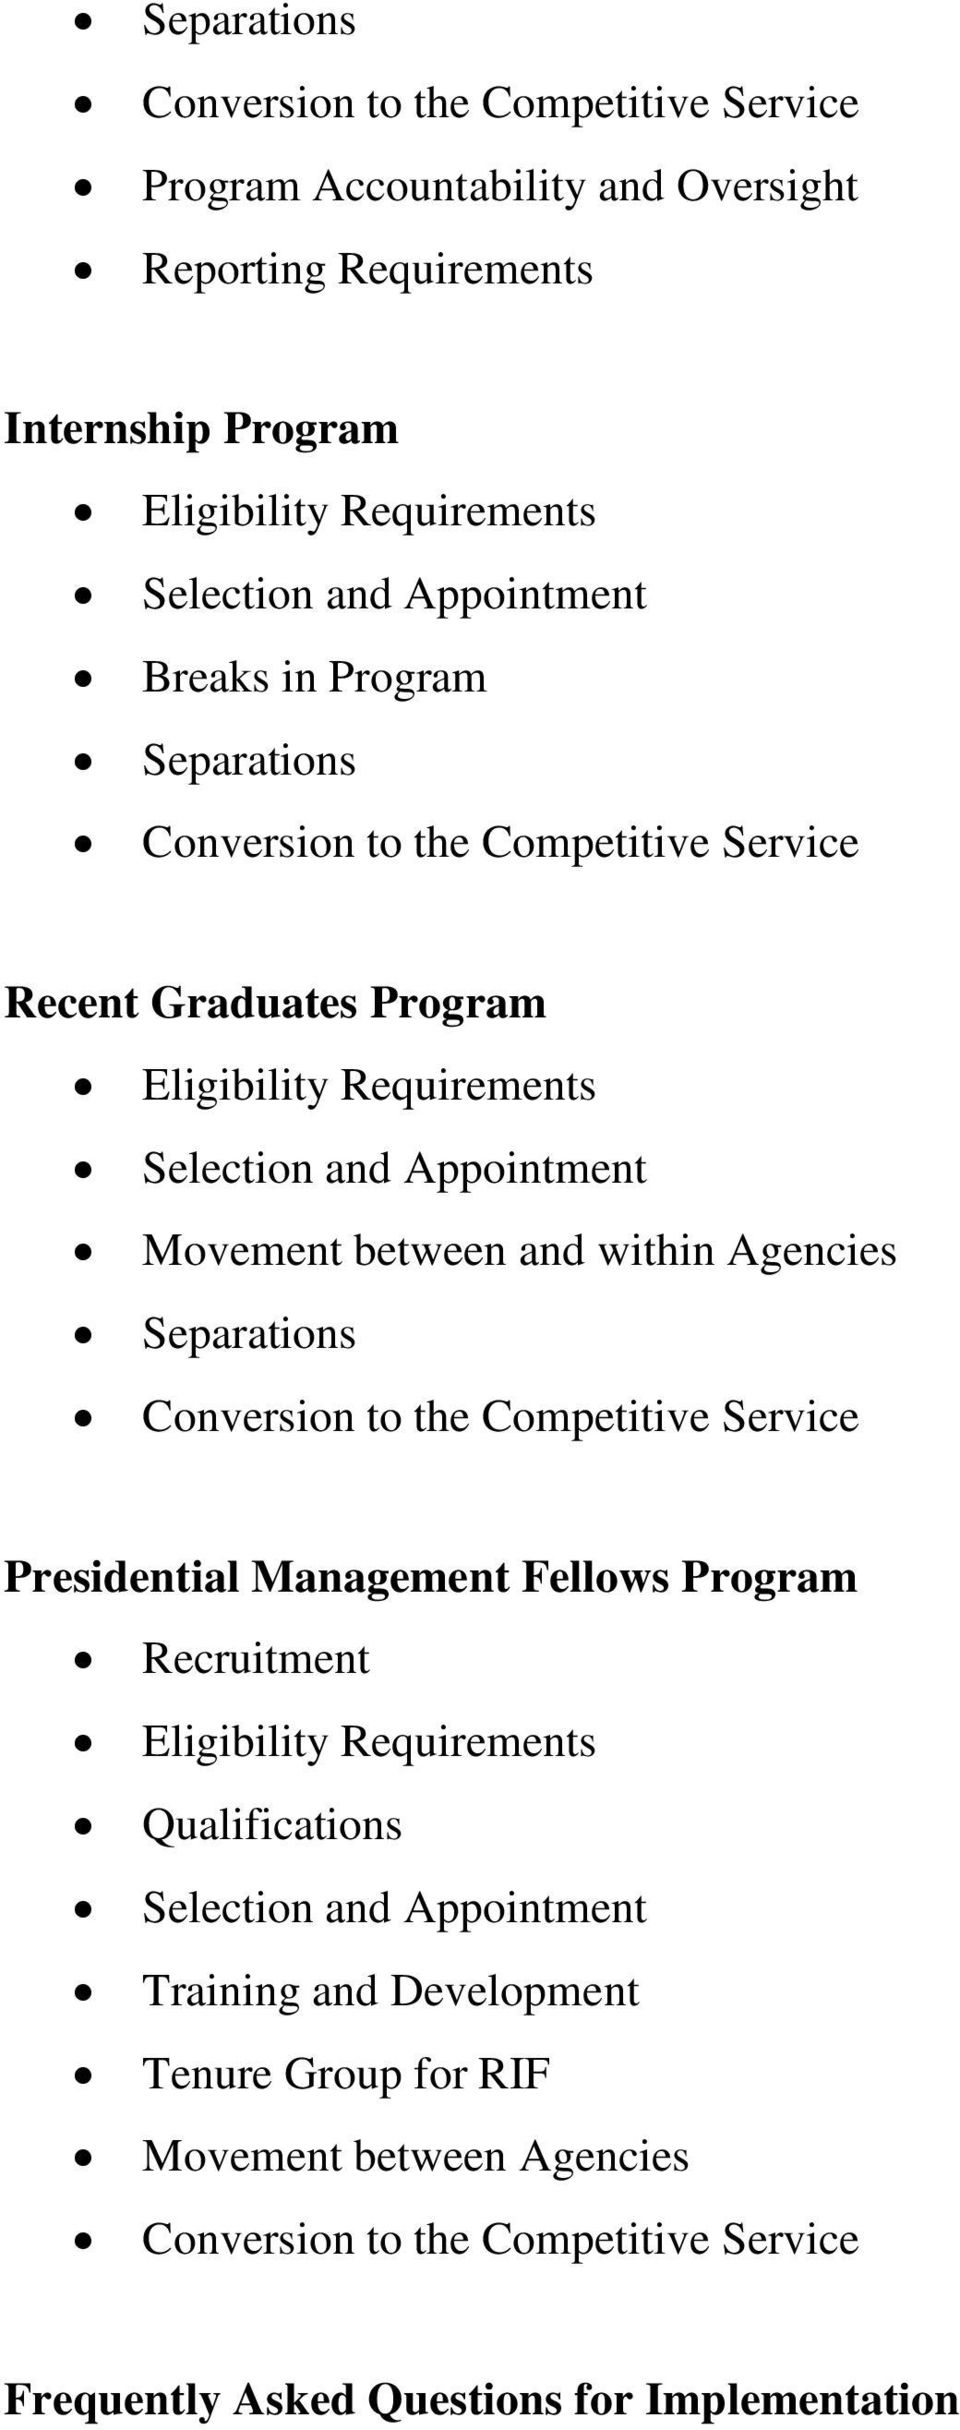 between and within Agencies Separations Conversion to the Competitive Service Presidential Management Fellows Program Recruitment Eligibility Requirements Qualifications